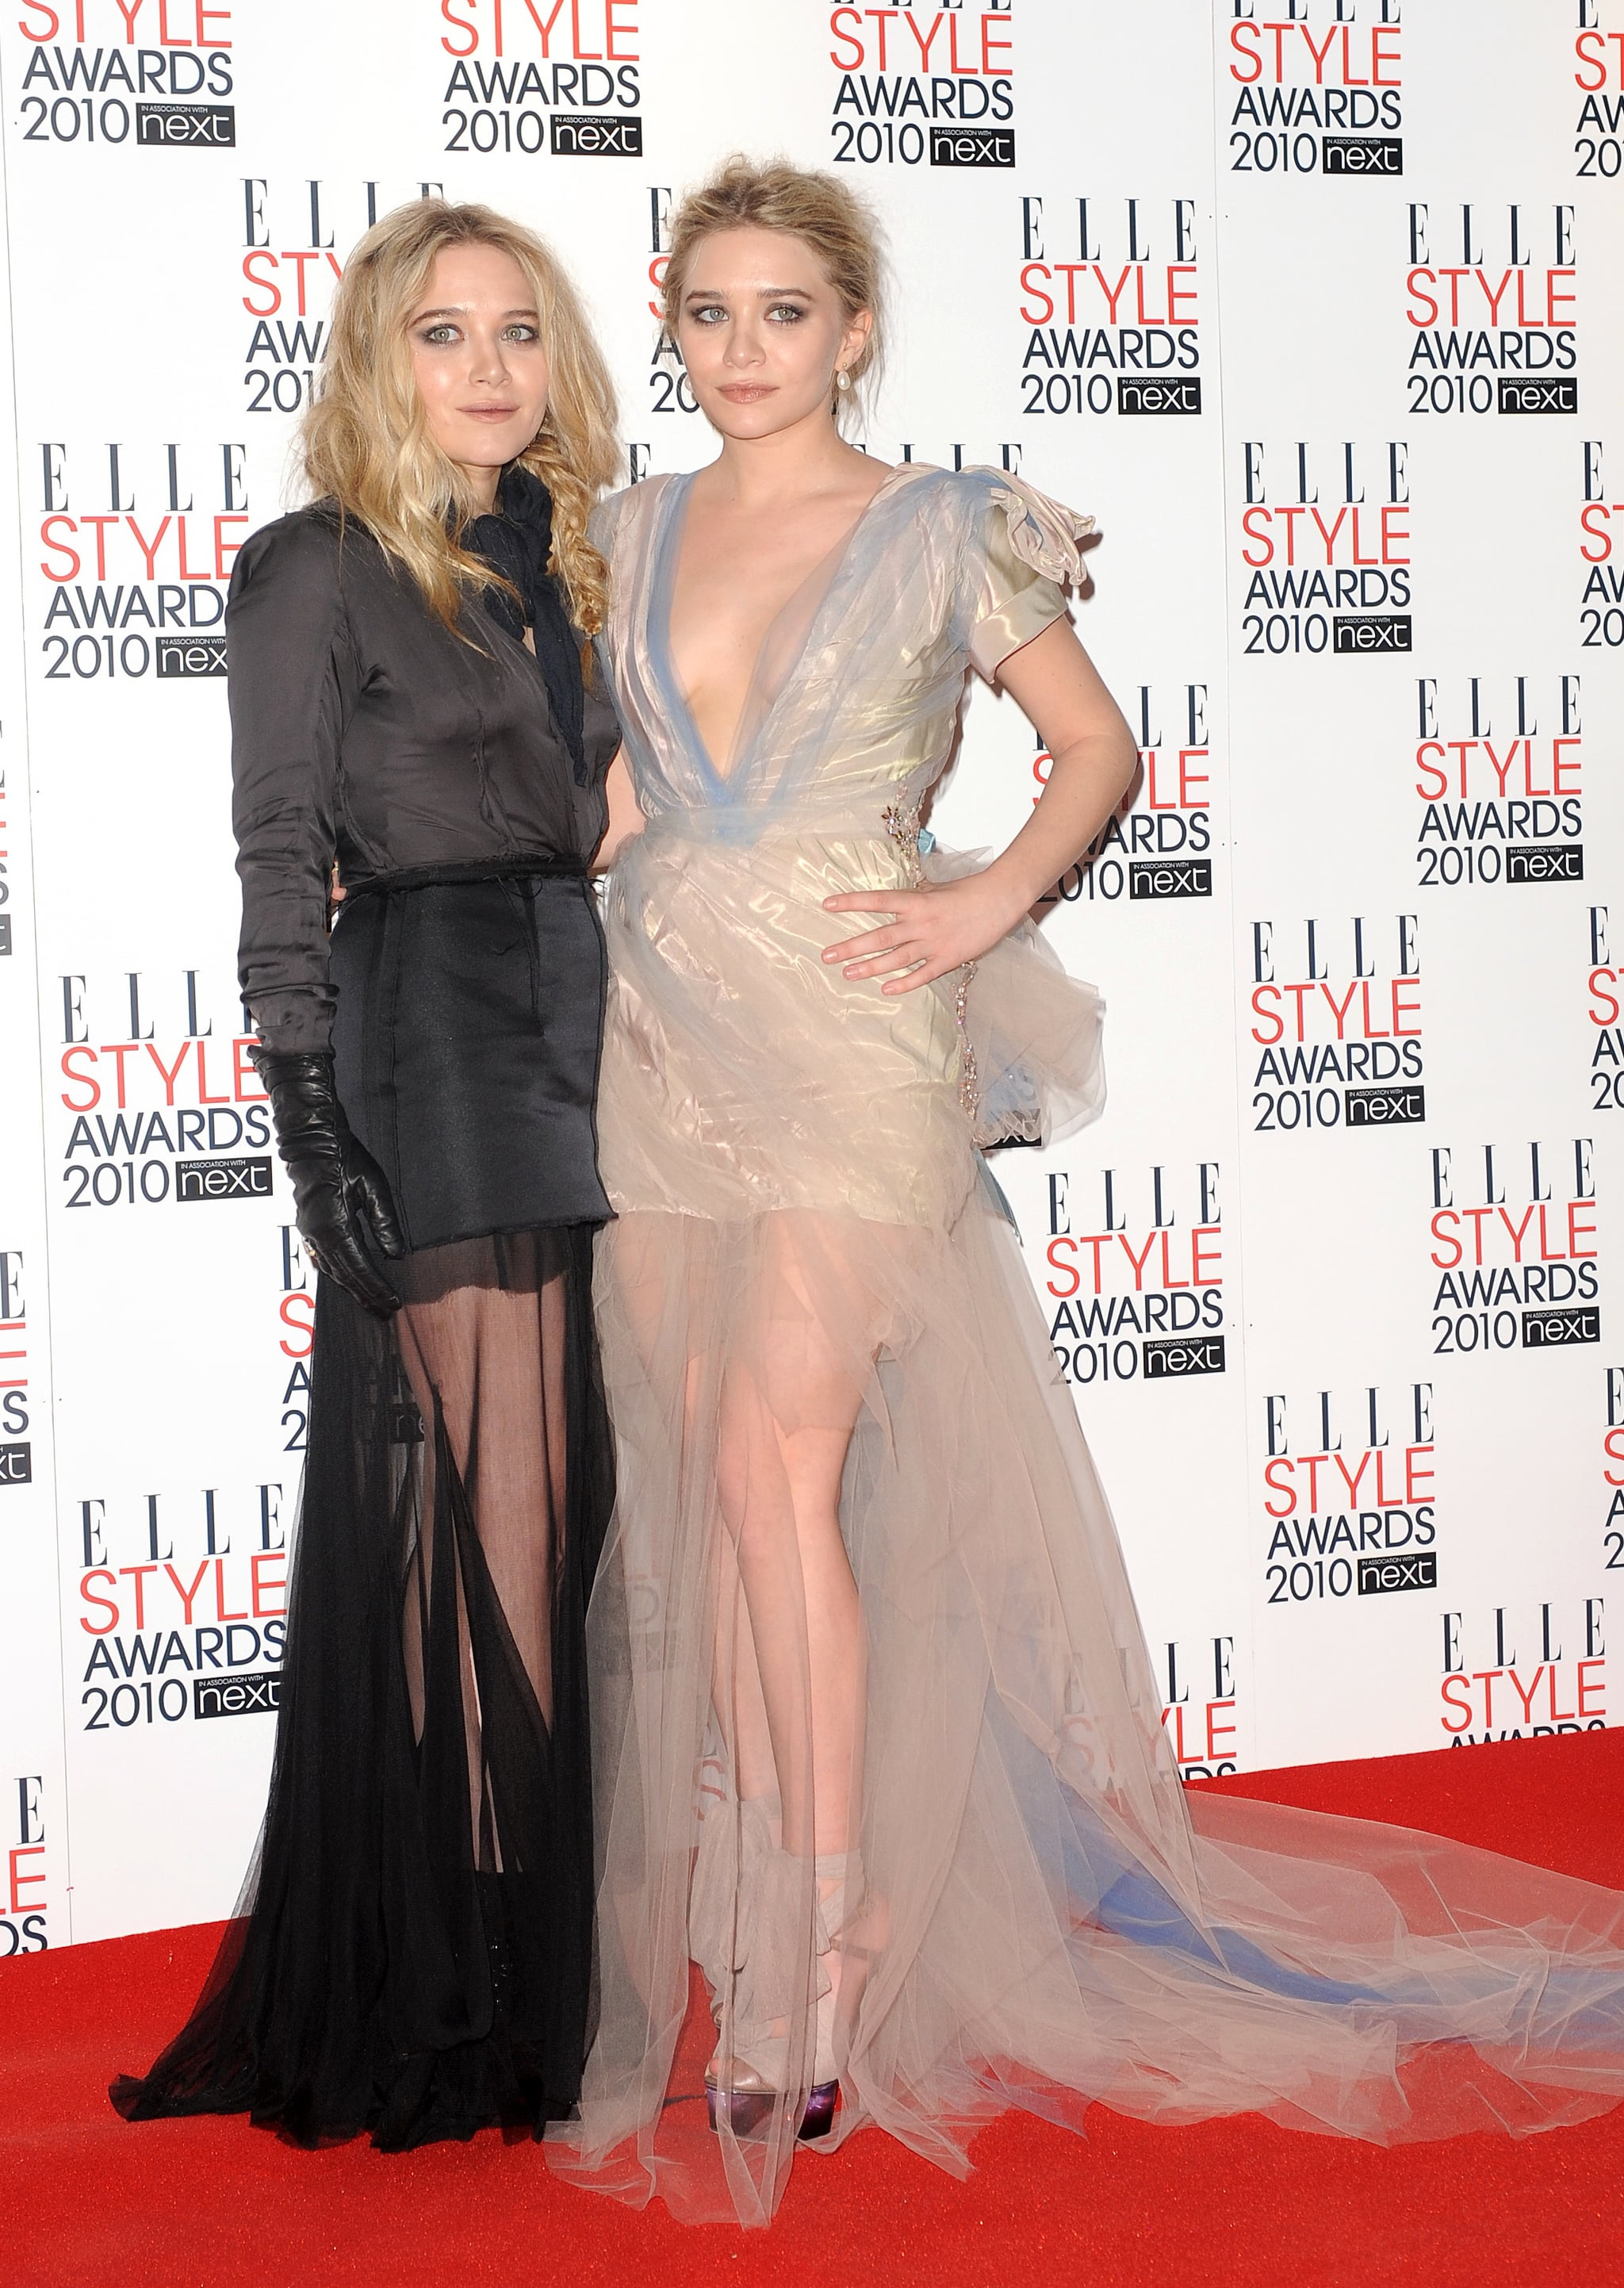 Twinning combo: For the 2010 ELLE Style Awards, Mary-Kate and Ashley chose sexy sheer-overlay gowns.  Mary-Kate worked the darker angle in a black satin and tulle gown with black leather gloves and a knotted ascot. Ashley was wrapped up in a frothy Christian Lacroix creation, complete with a blue-streaked train, and tulle lace-up Fendi platforms.